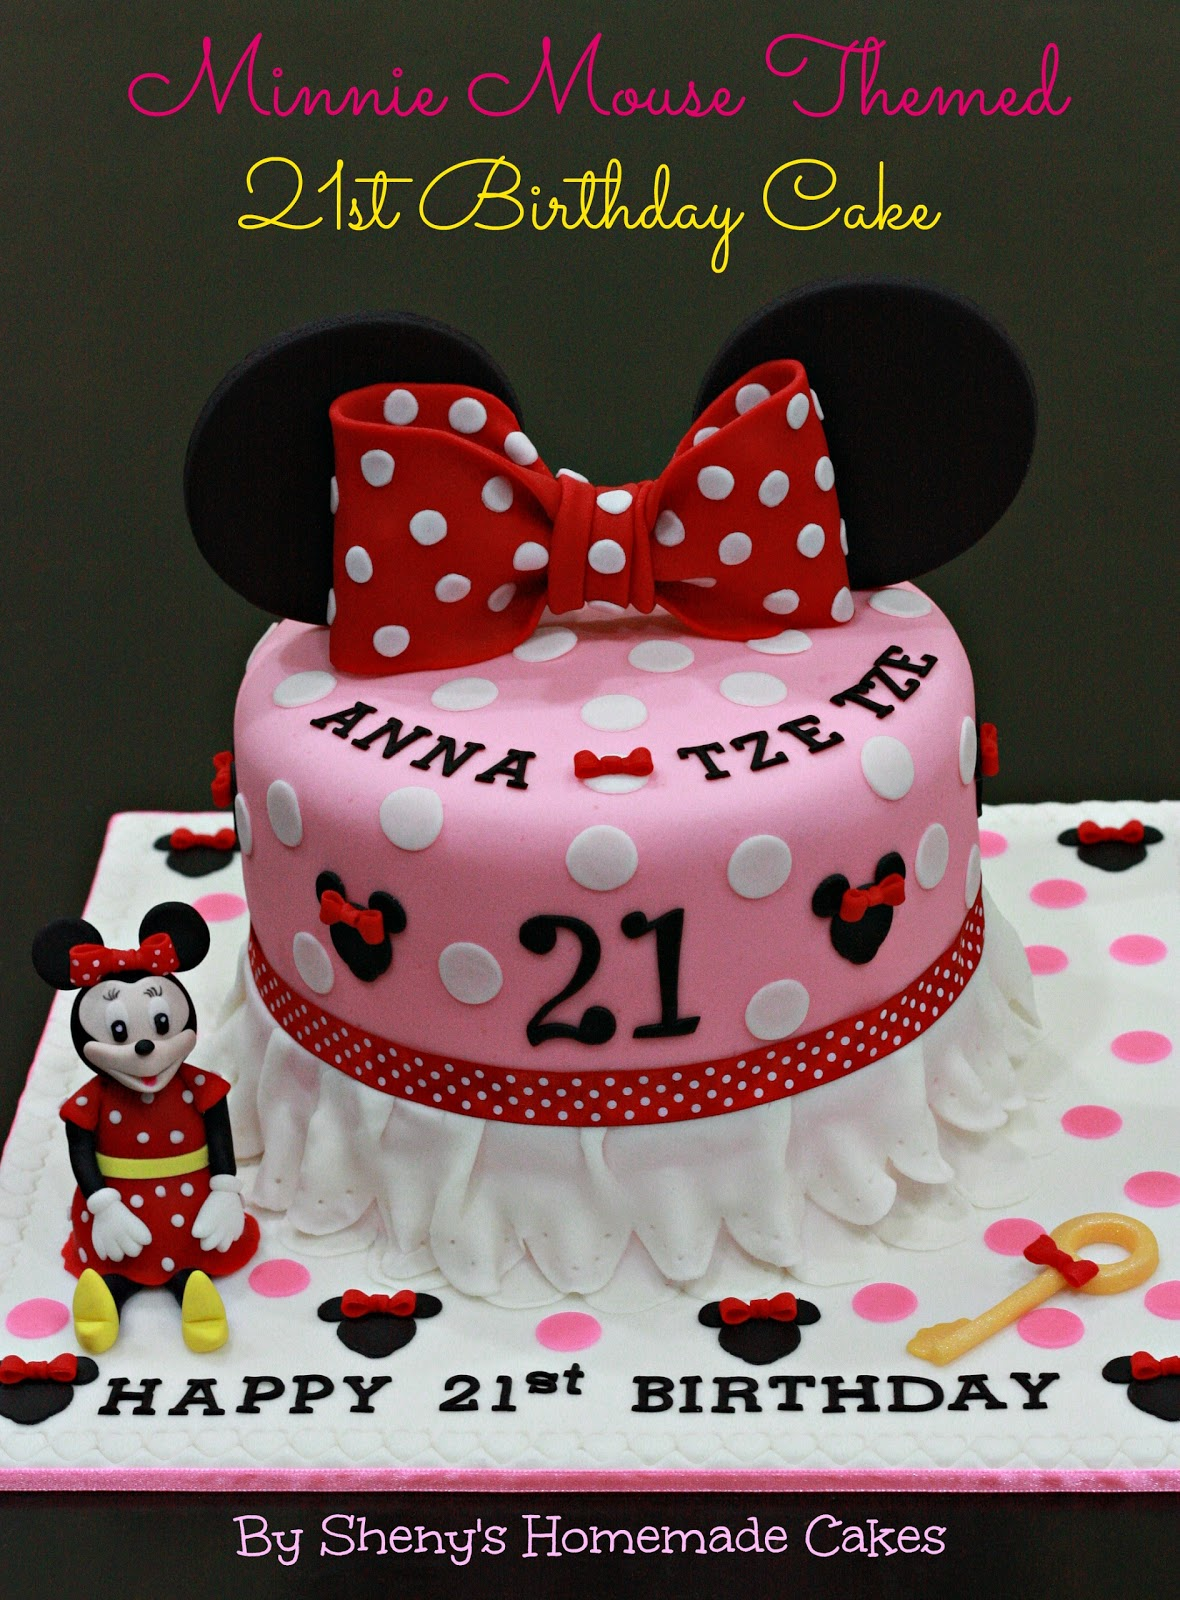 Sheny 39 s homemade treats minnie mouse themed 21st birthday for 21st bday decoration ideas